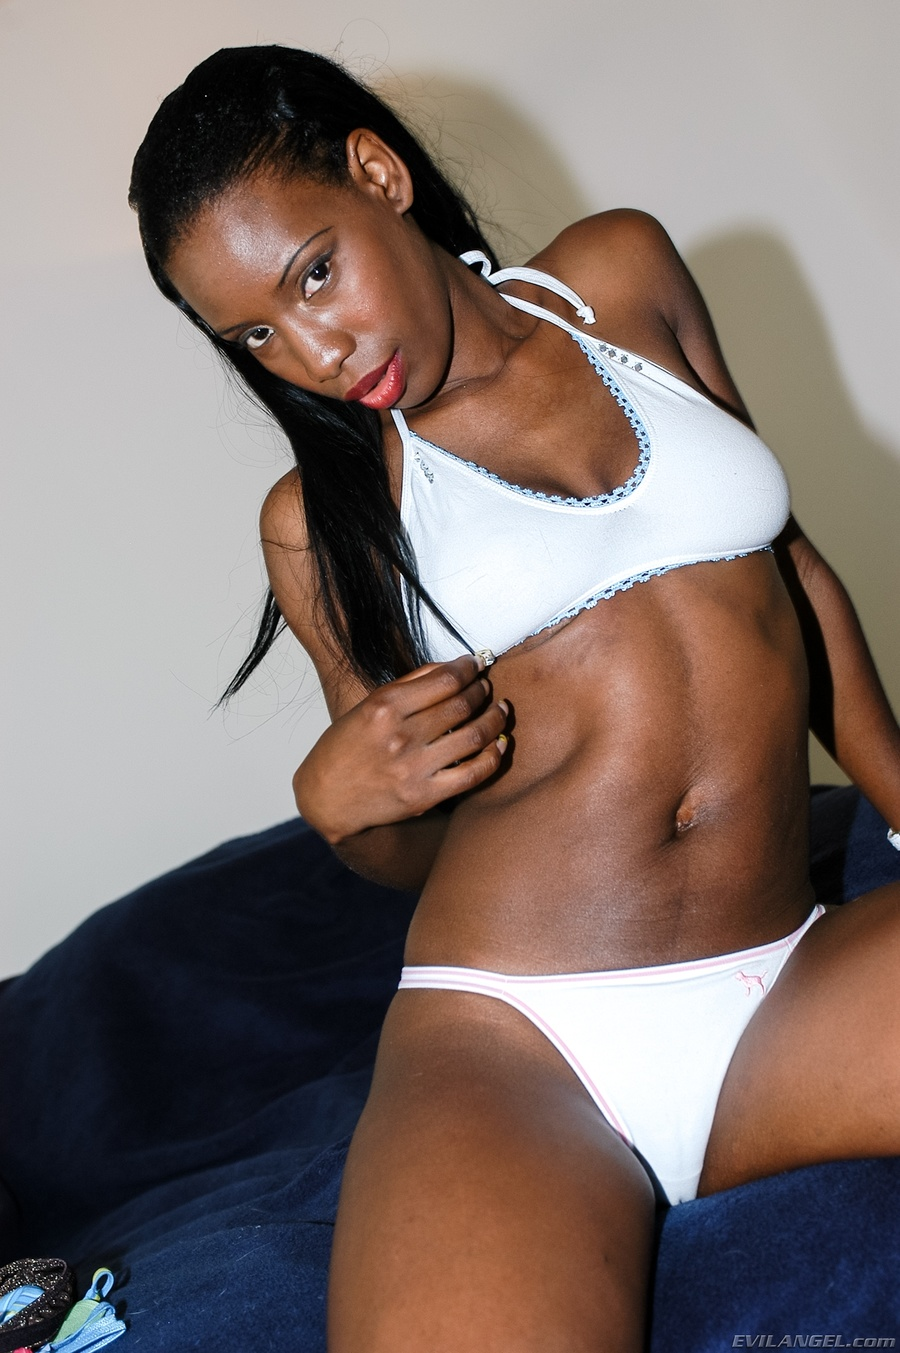 Xxx ebony panties